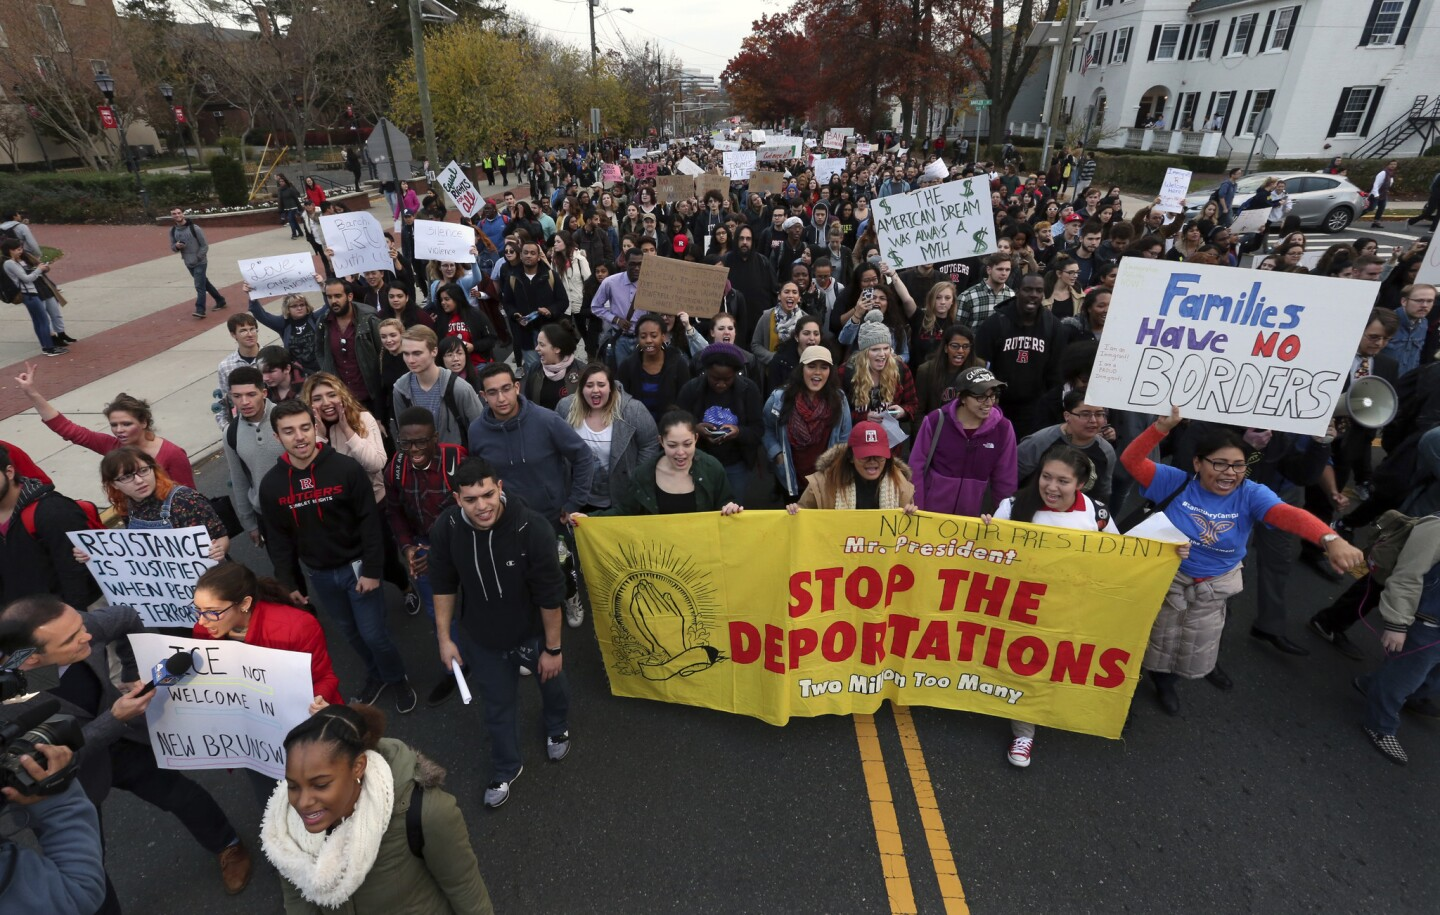 Hundreds of Rutgers University students march to protest President-elect Donald Trump's policies and to ask school officials to denounce his plans on Wednesday, Nov. 16, 2016, in New Brunswick, N.J.